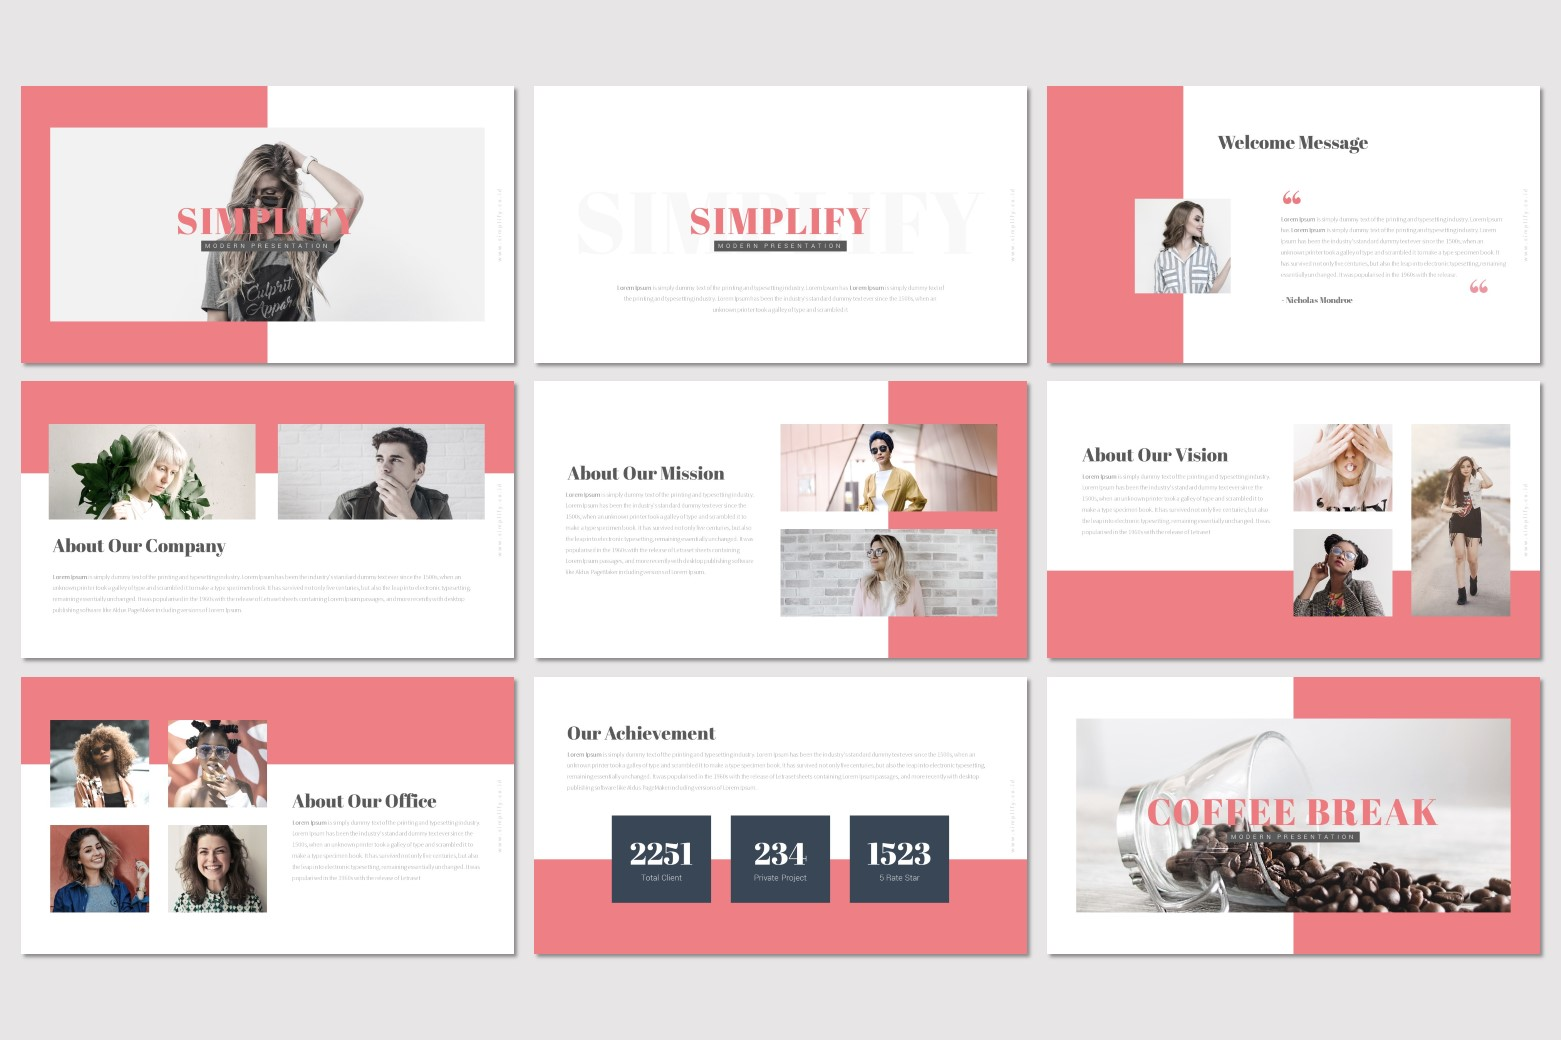 Simplify - Google Slides Template example image 2